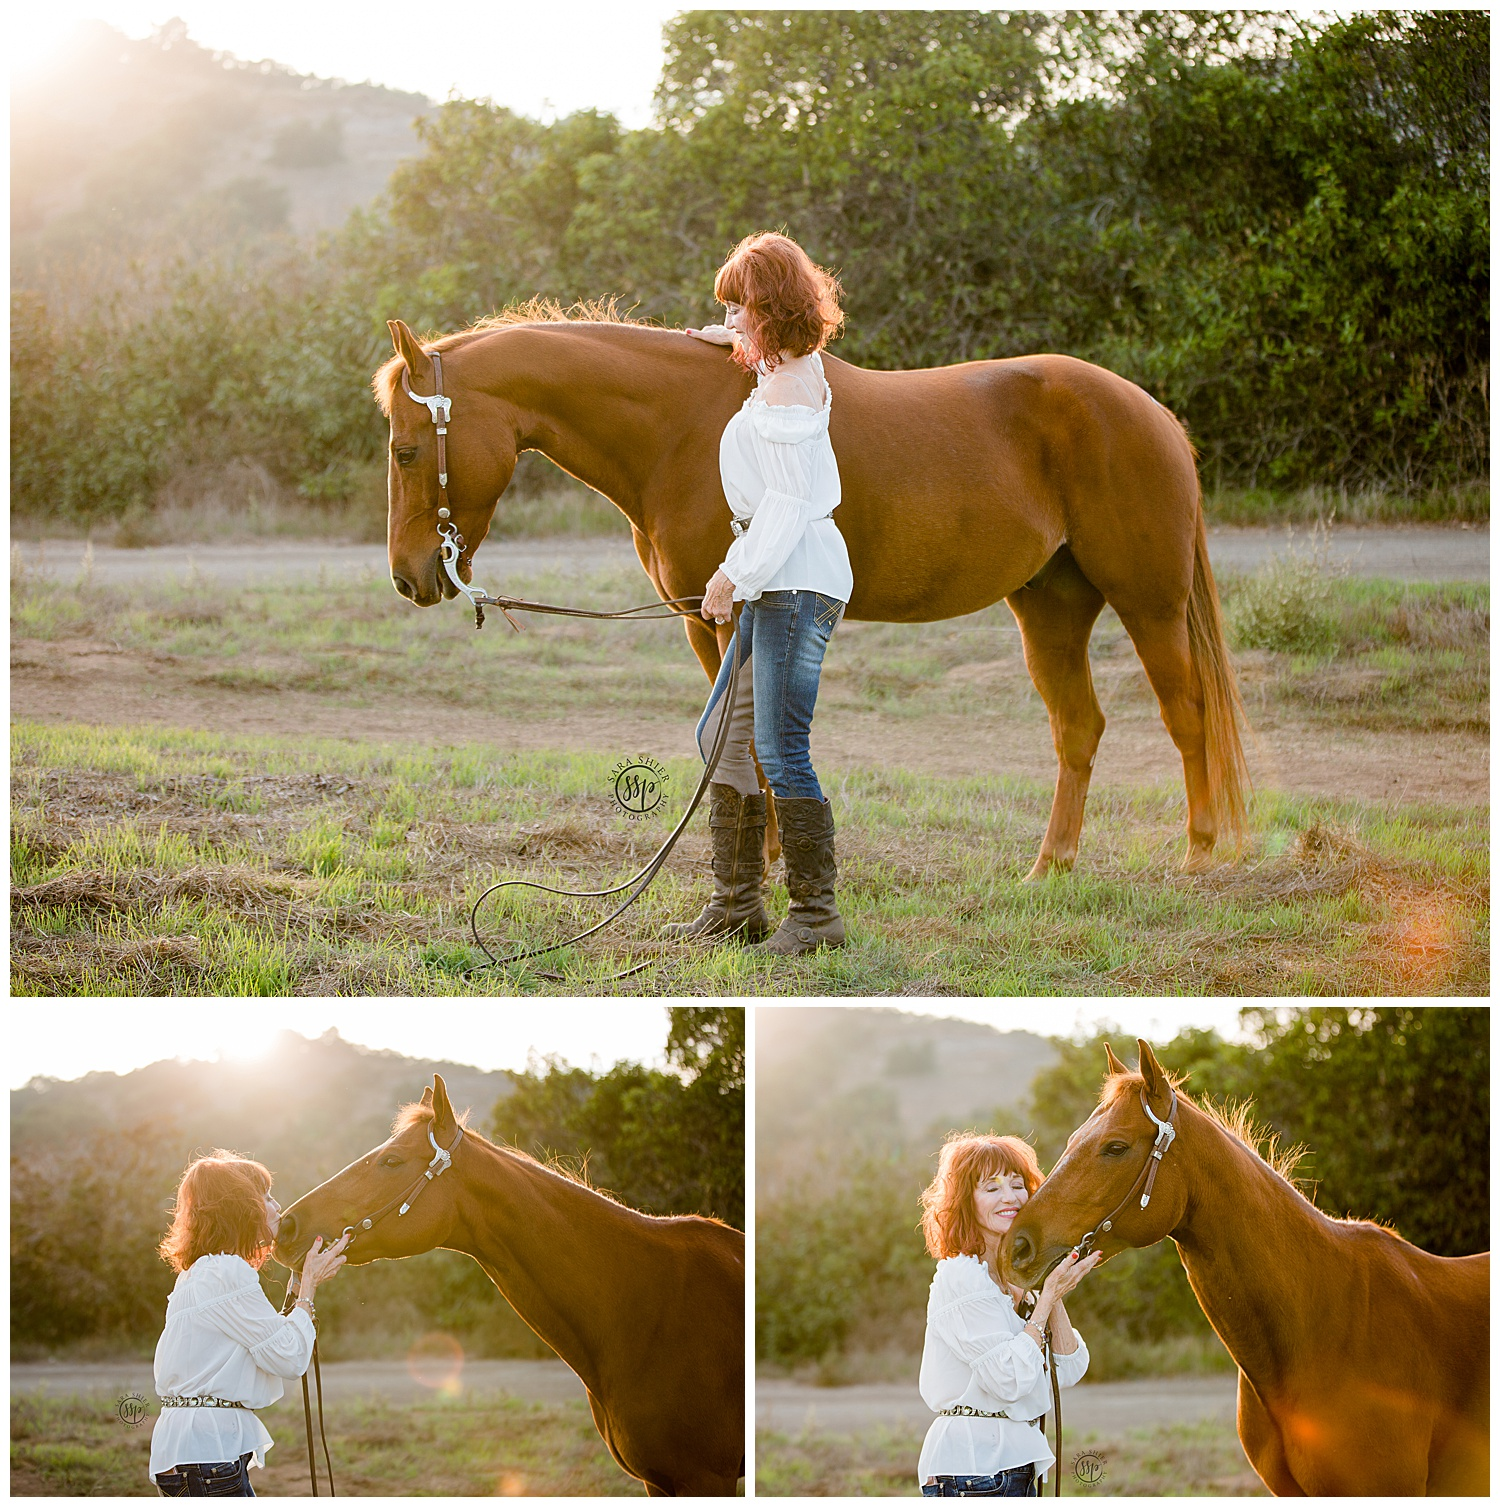 Black Background Horse Rider Equine Photographer Southern California Sara Shier Photography SoCal Equestrian Cowgirl_0333.jpg